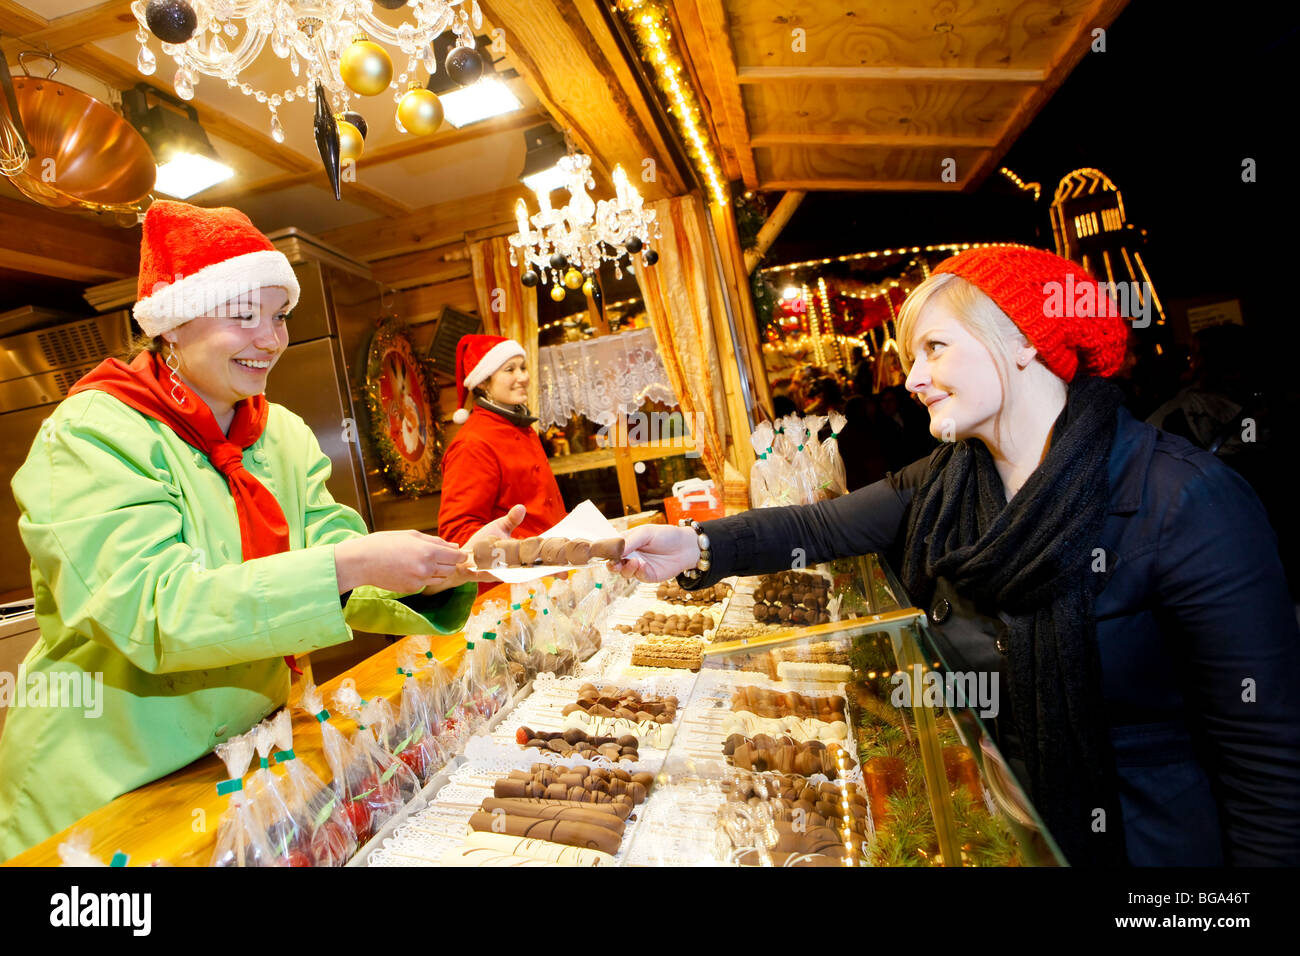 The German Market in Bimingham City Centre at Christmas. Buying handmade chocolate at a stall in the market. - Stock Image